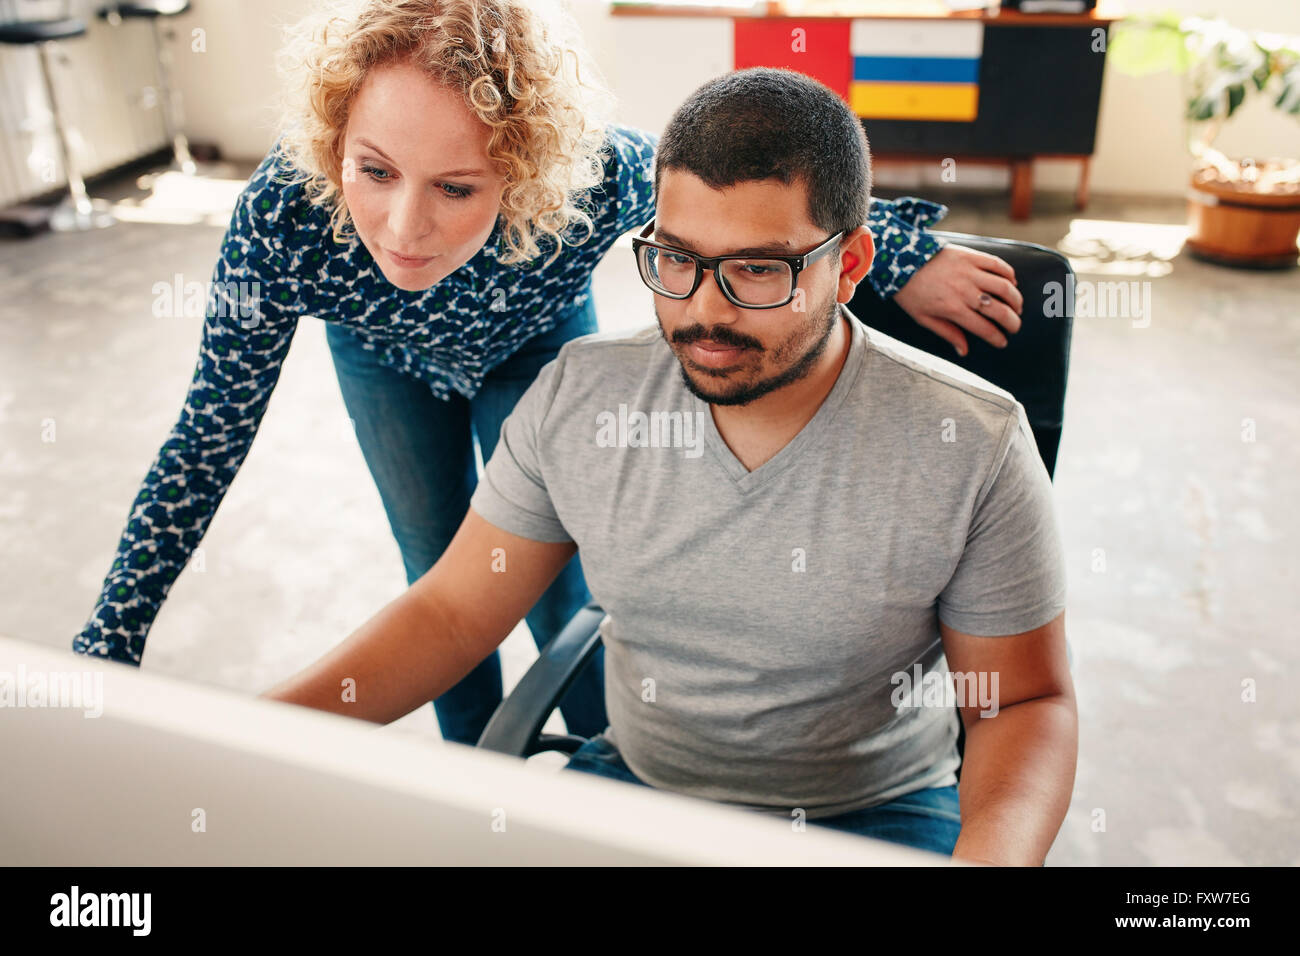 Portrait of two young graphic designers working on computer in office. Male and woman designers looking at computer - Stock Image